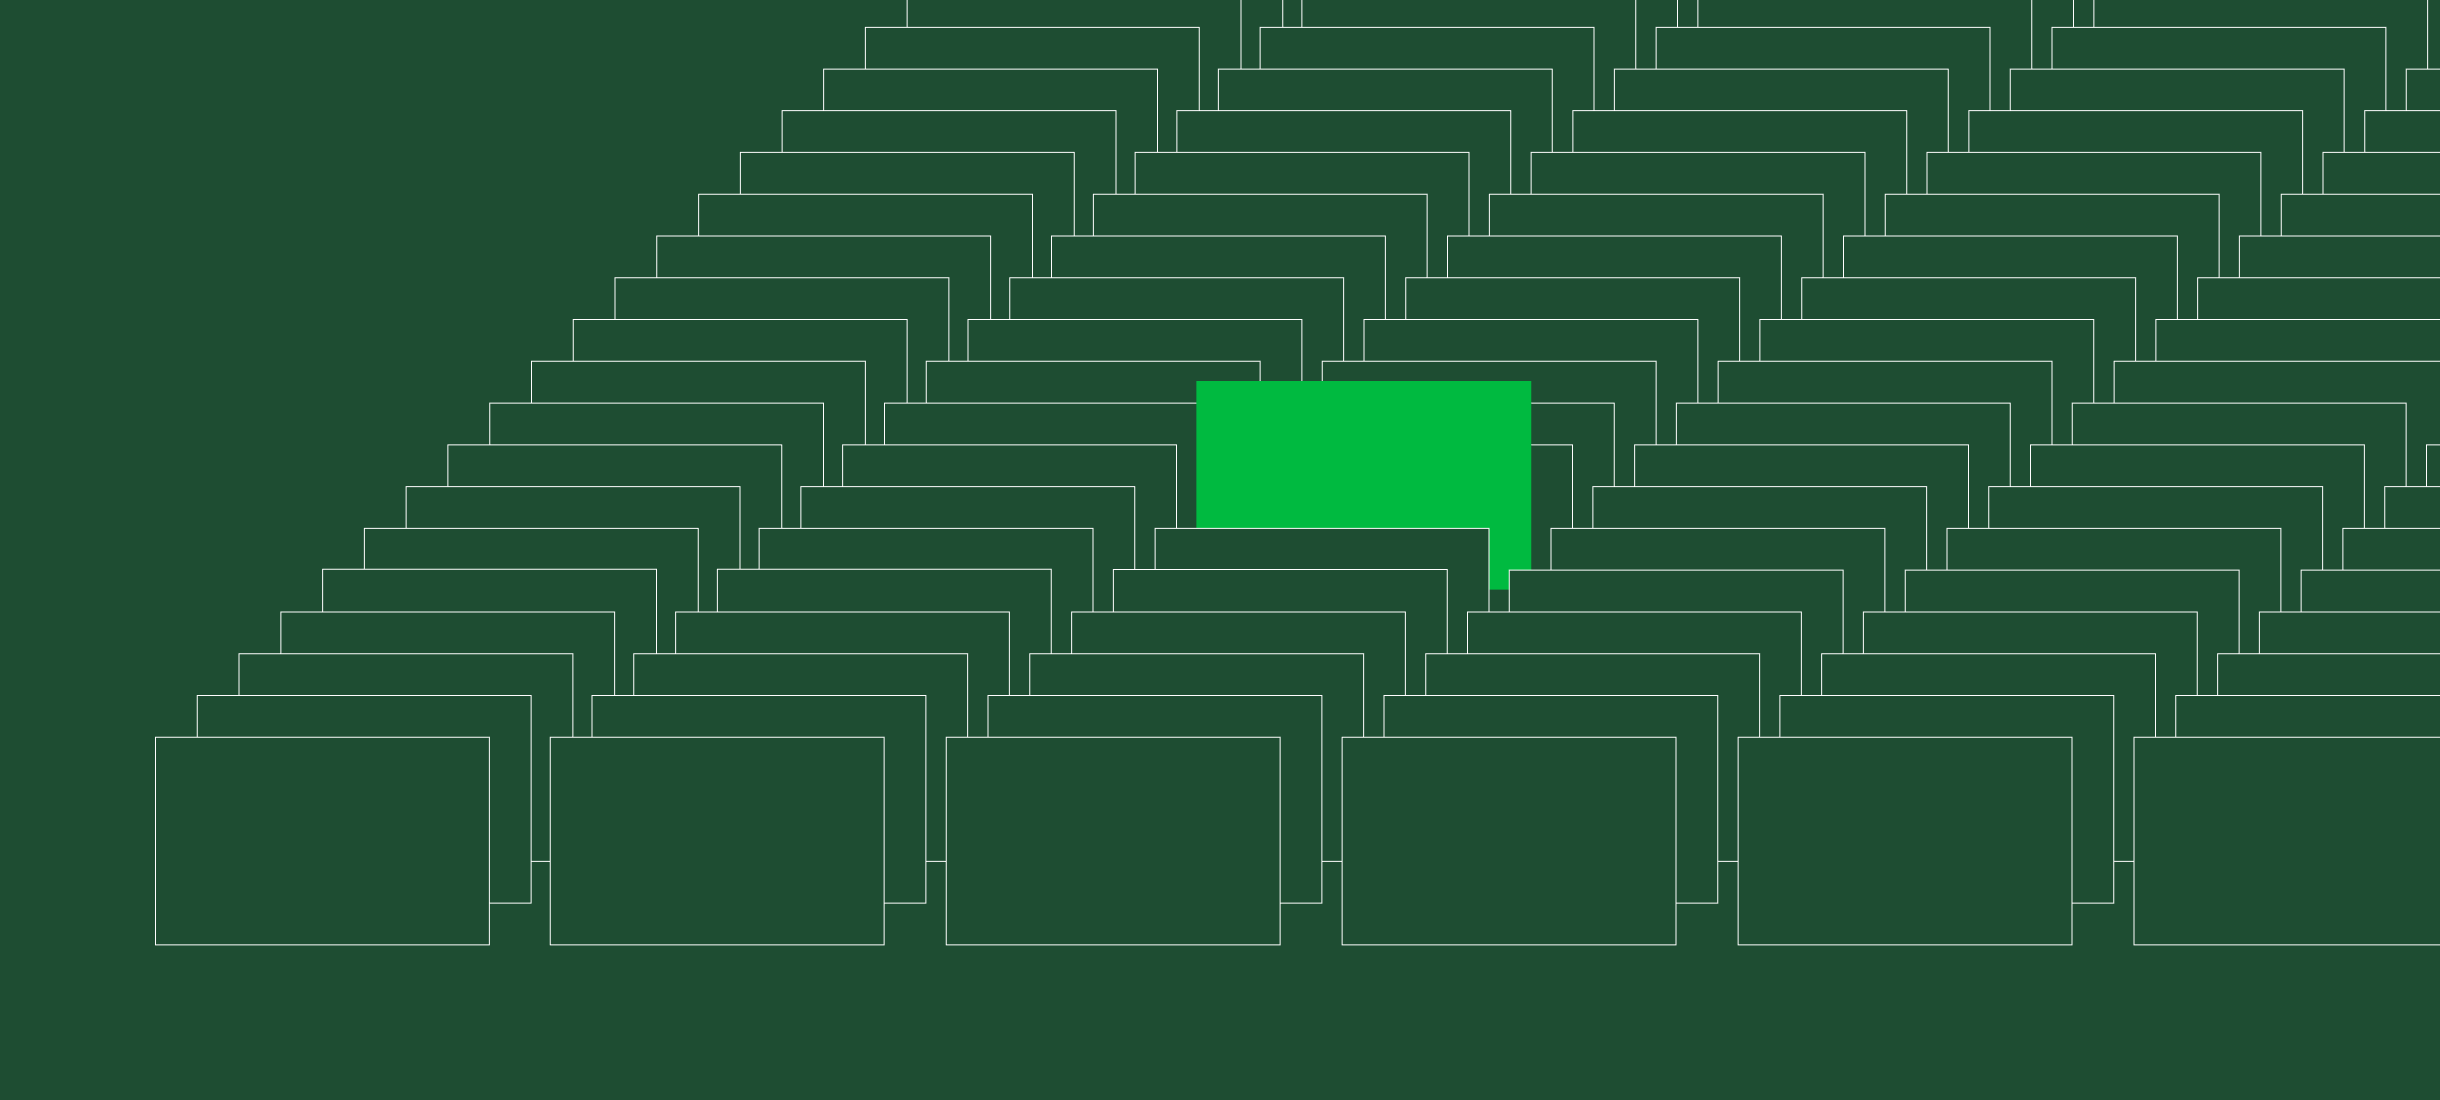 Illustration of rectangles on forest green background, with one bright green